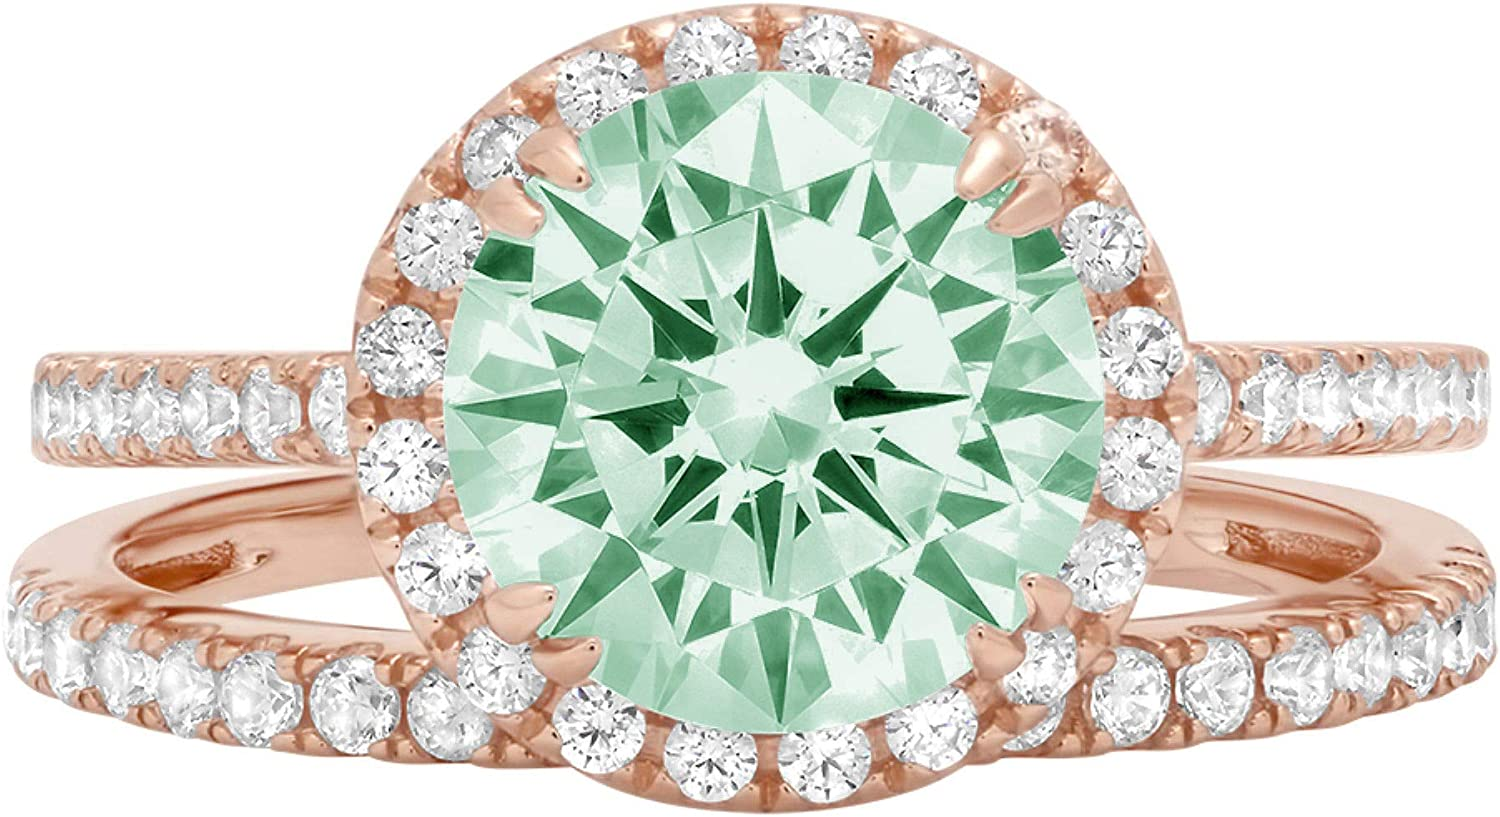 2.69ct Round Cut Halo Pave Solitaire with Accent Light Sea Green Simulated Diamond Designer Statement Classic Ring Band Set Real Solid 14k Rose Gold